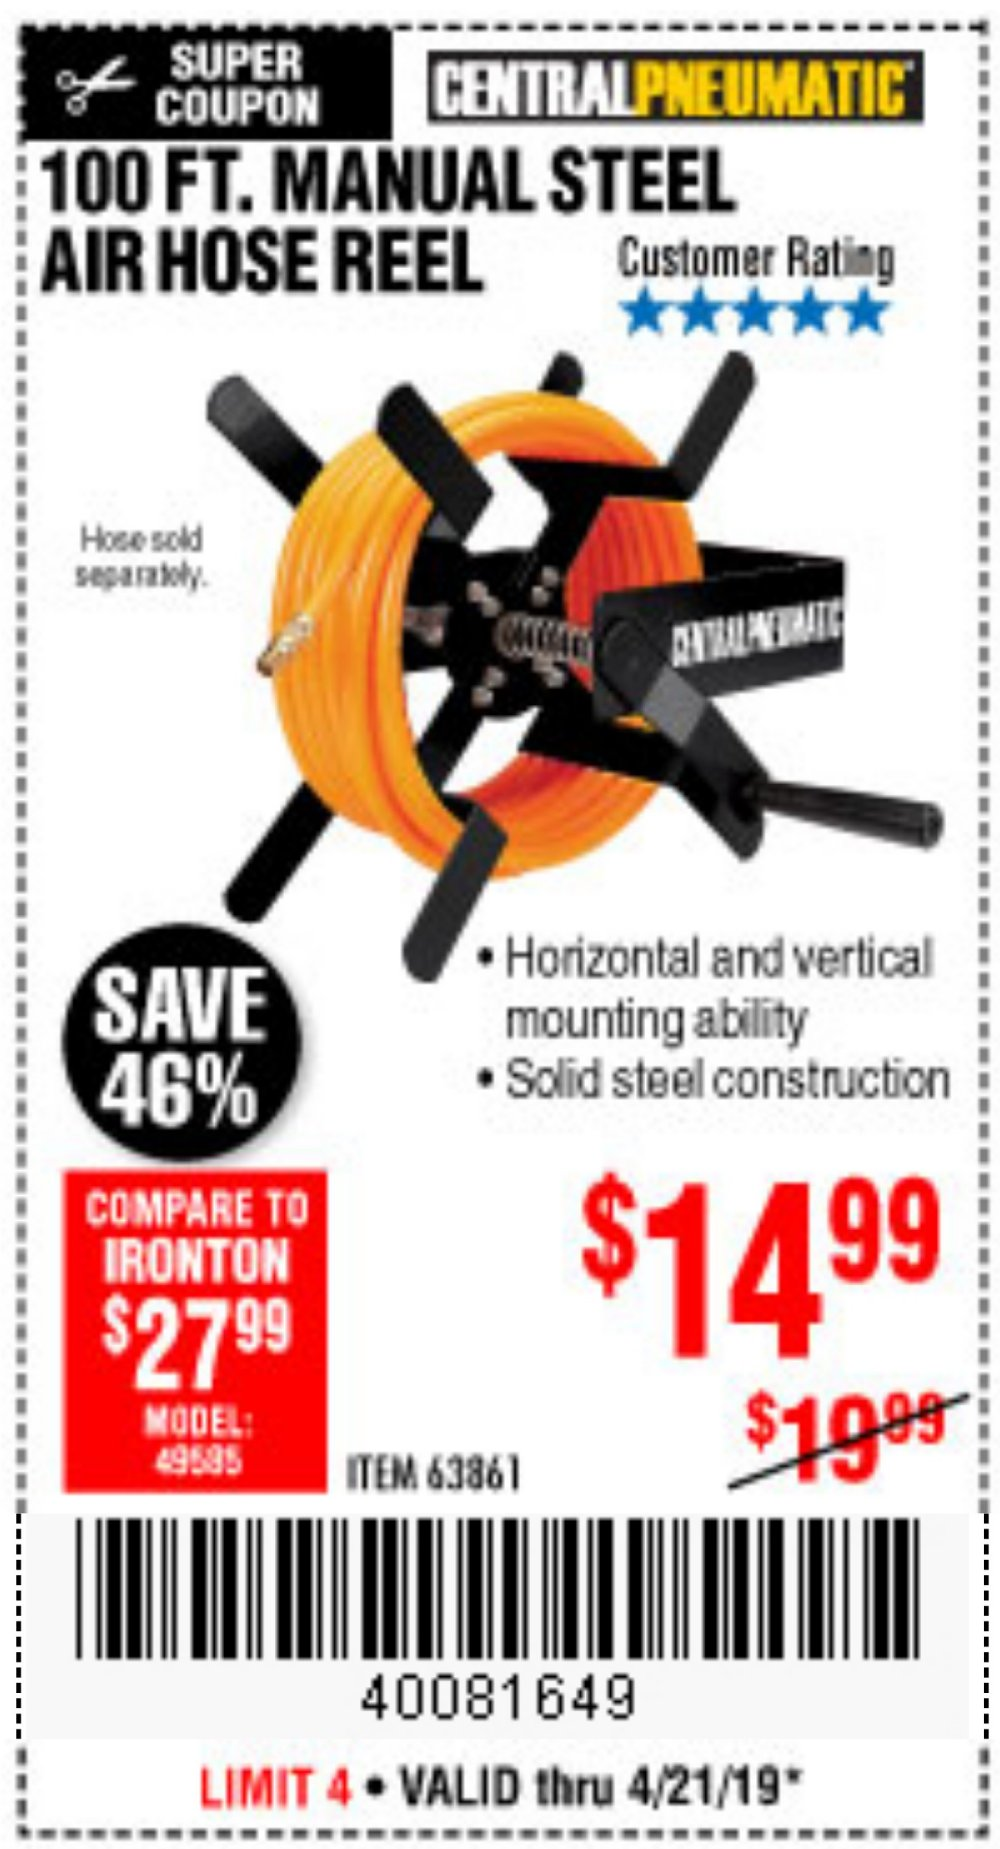 Harbor Freight Coupon, HF Coupons - 100 Ft. Manual Steel Air Hose Reel